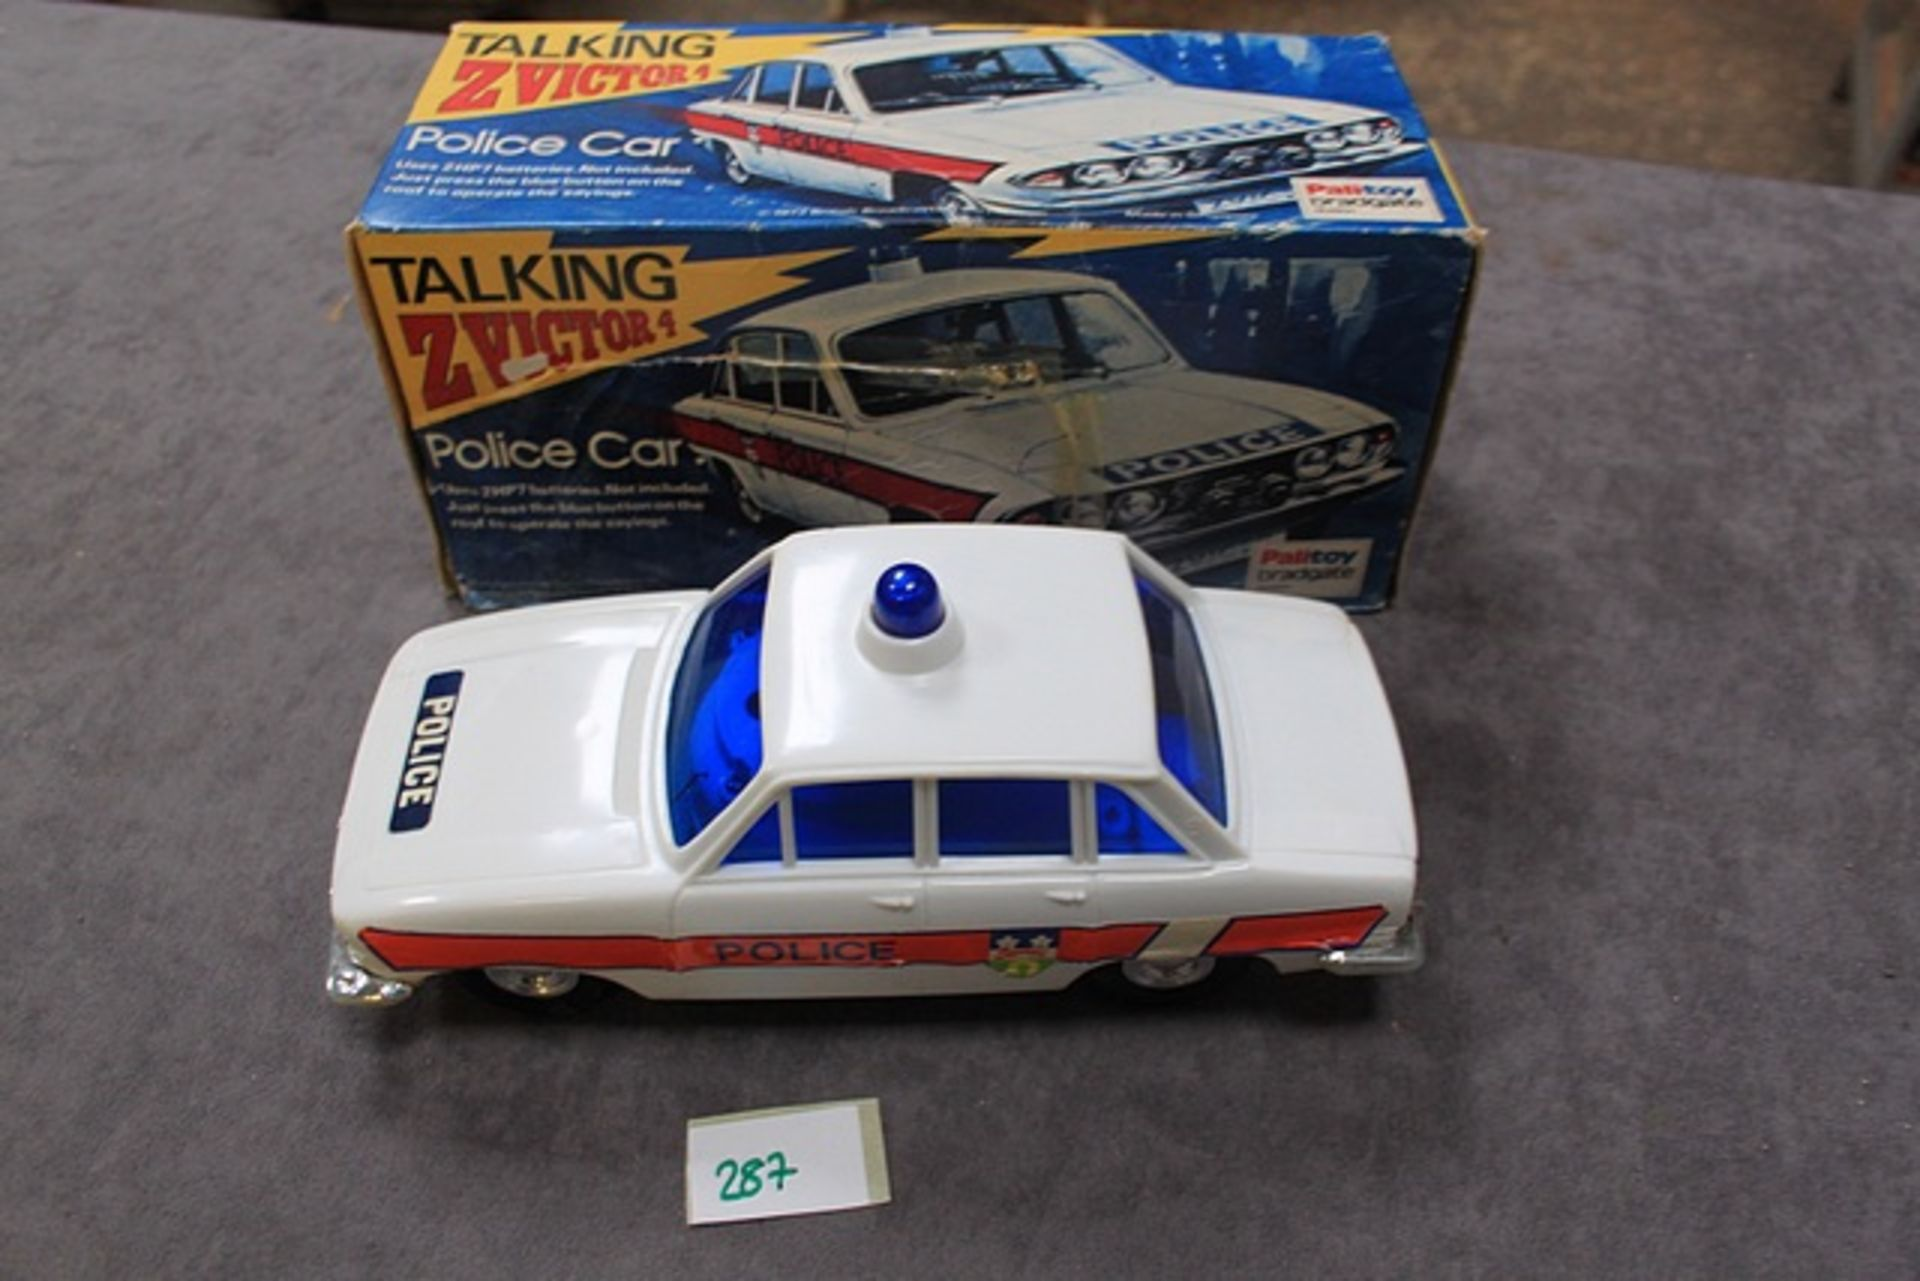 Lot 287 - Palitoy 1973 Triumph 2.5 Police Car Talking Z Victor 4 - Battery Operated Complete With Box